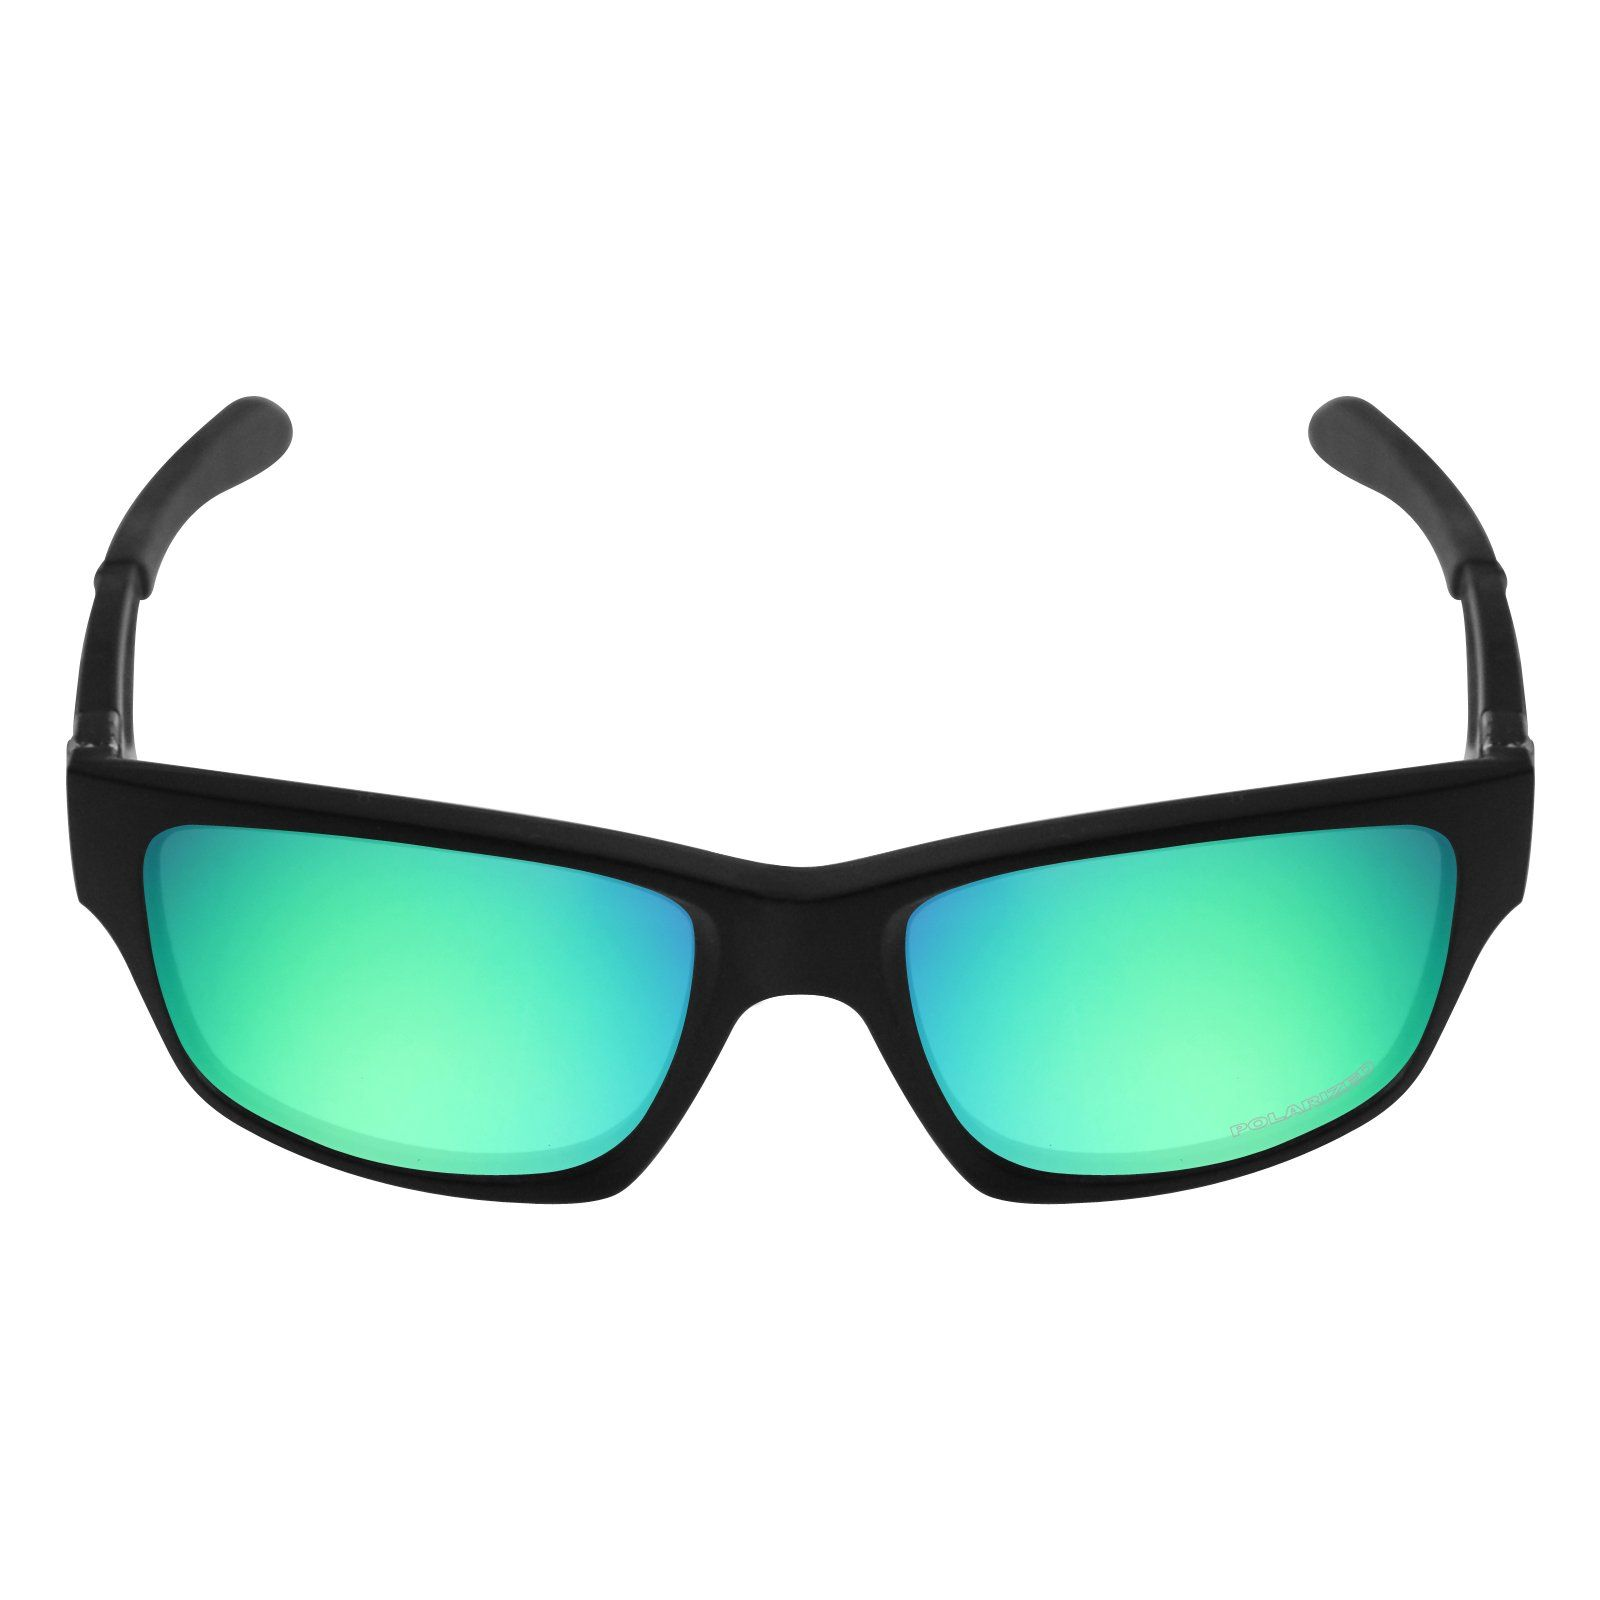 9605b1093a122 Mryok Polarized Replacement Lenses for Oakley Jupiter Squared   Jupiter  Carbon Emerald Green    You can find more details by visiting the image  link.